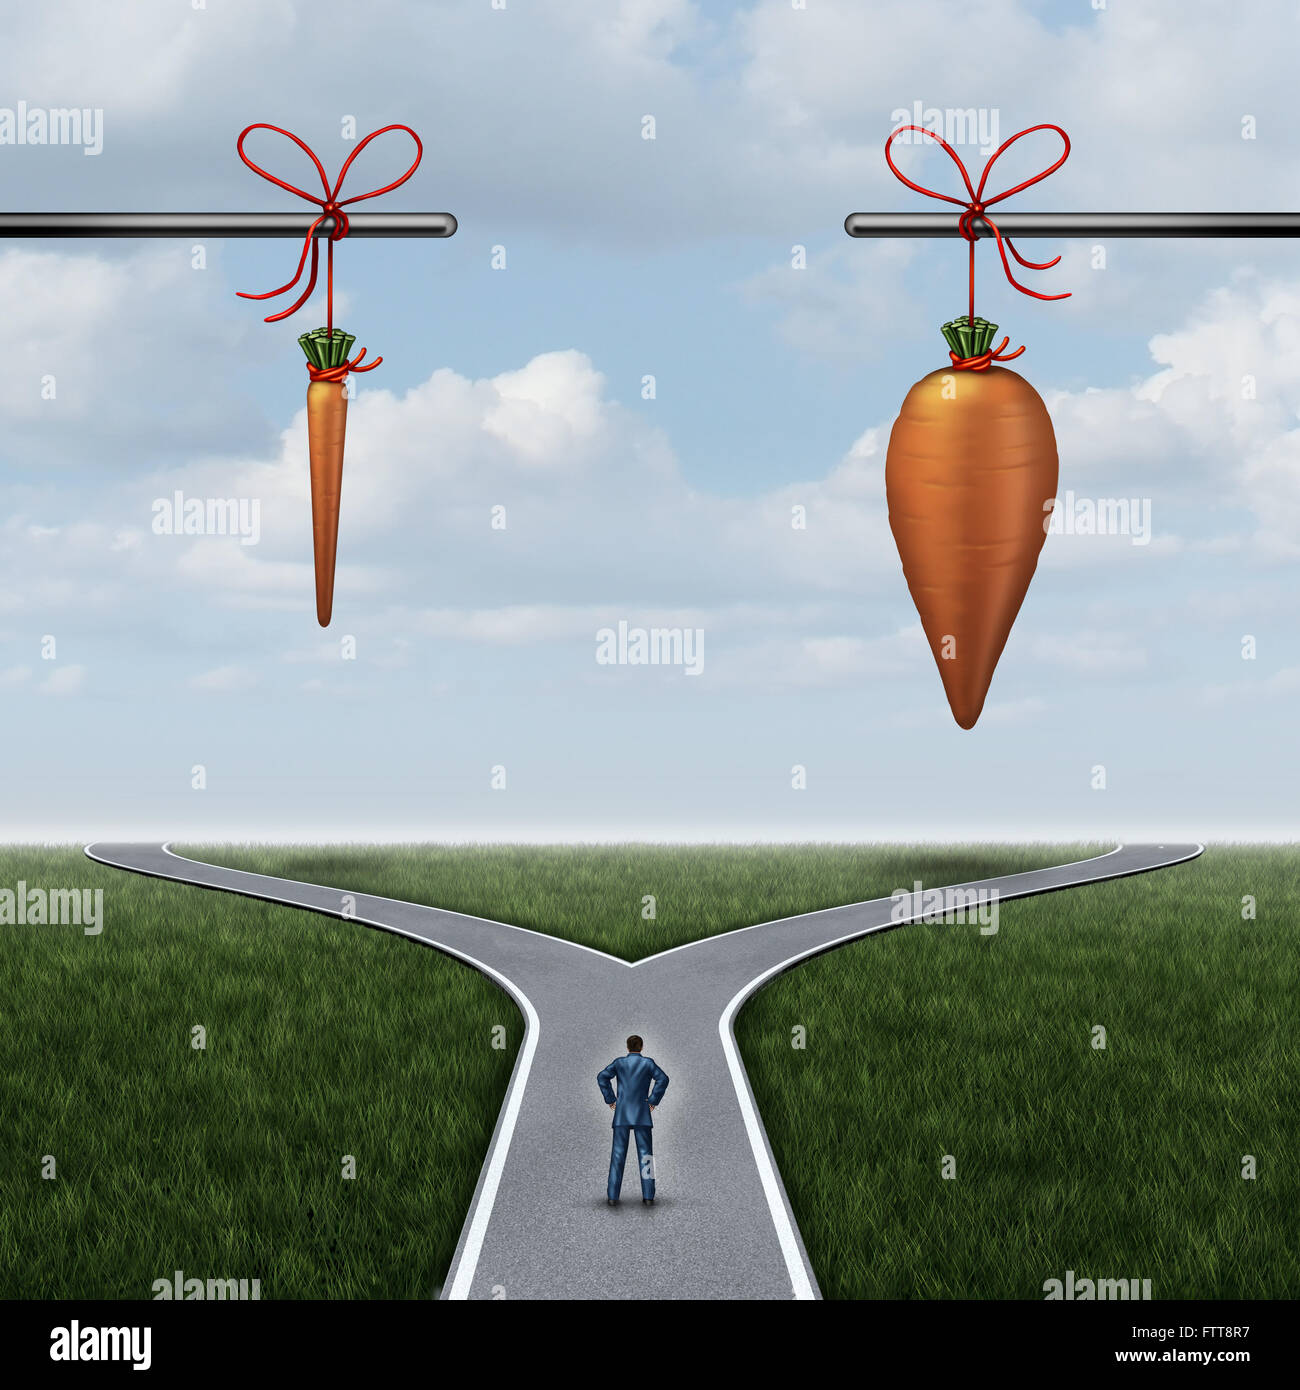 Incentive concept as a carrot and stick metaphor with a businessman at a crossroad with a small reward. - Stock Image